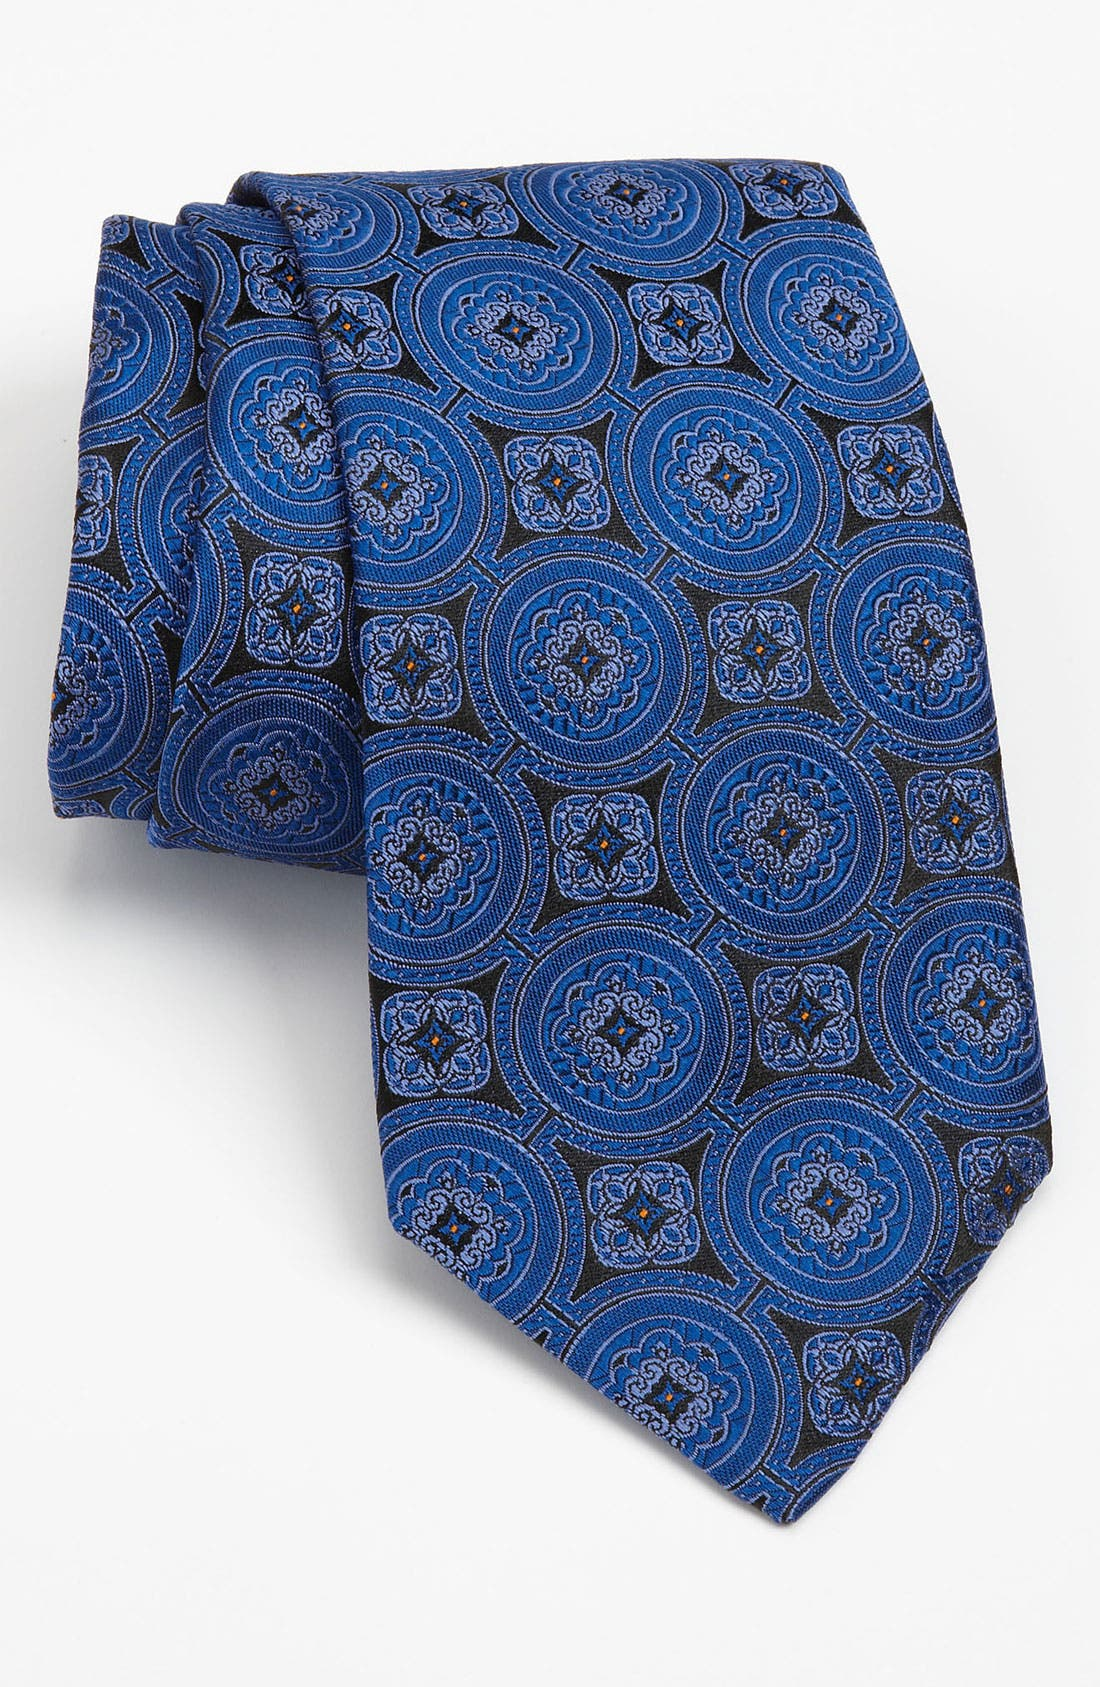 Alternate Image 1 Selected - Robert Talbott Woven Silk Tie